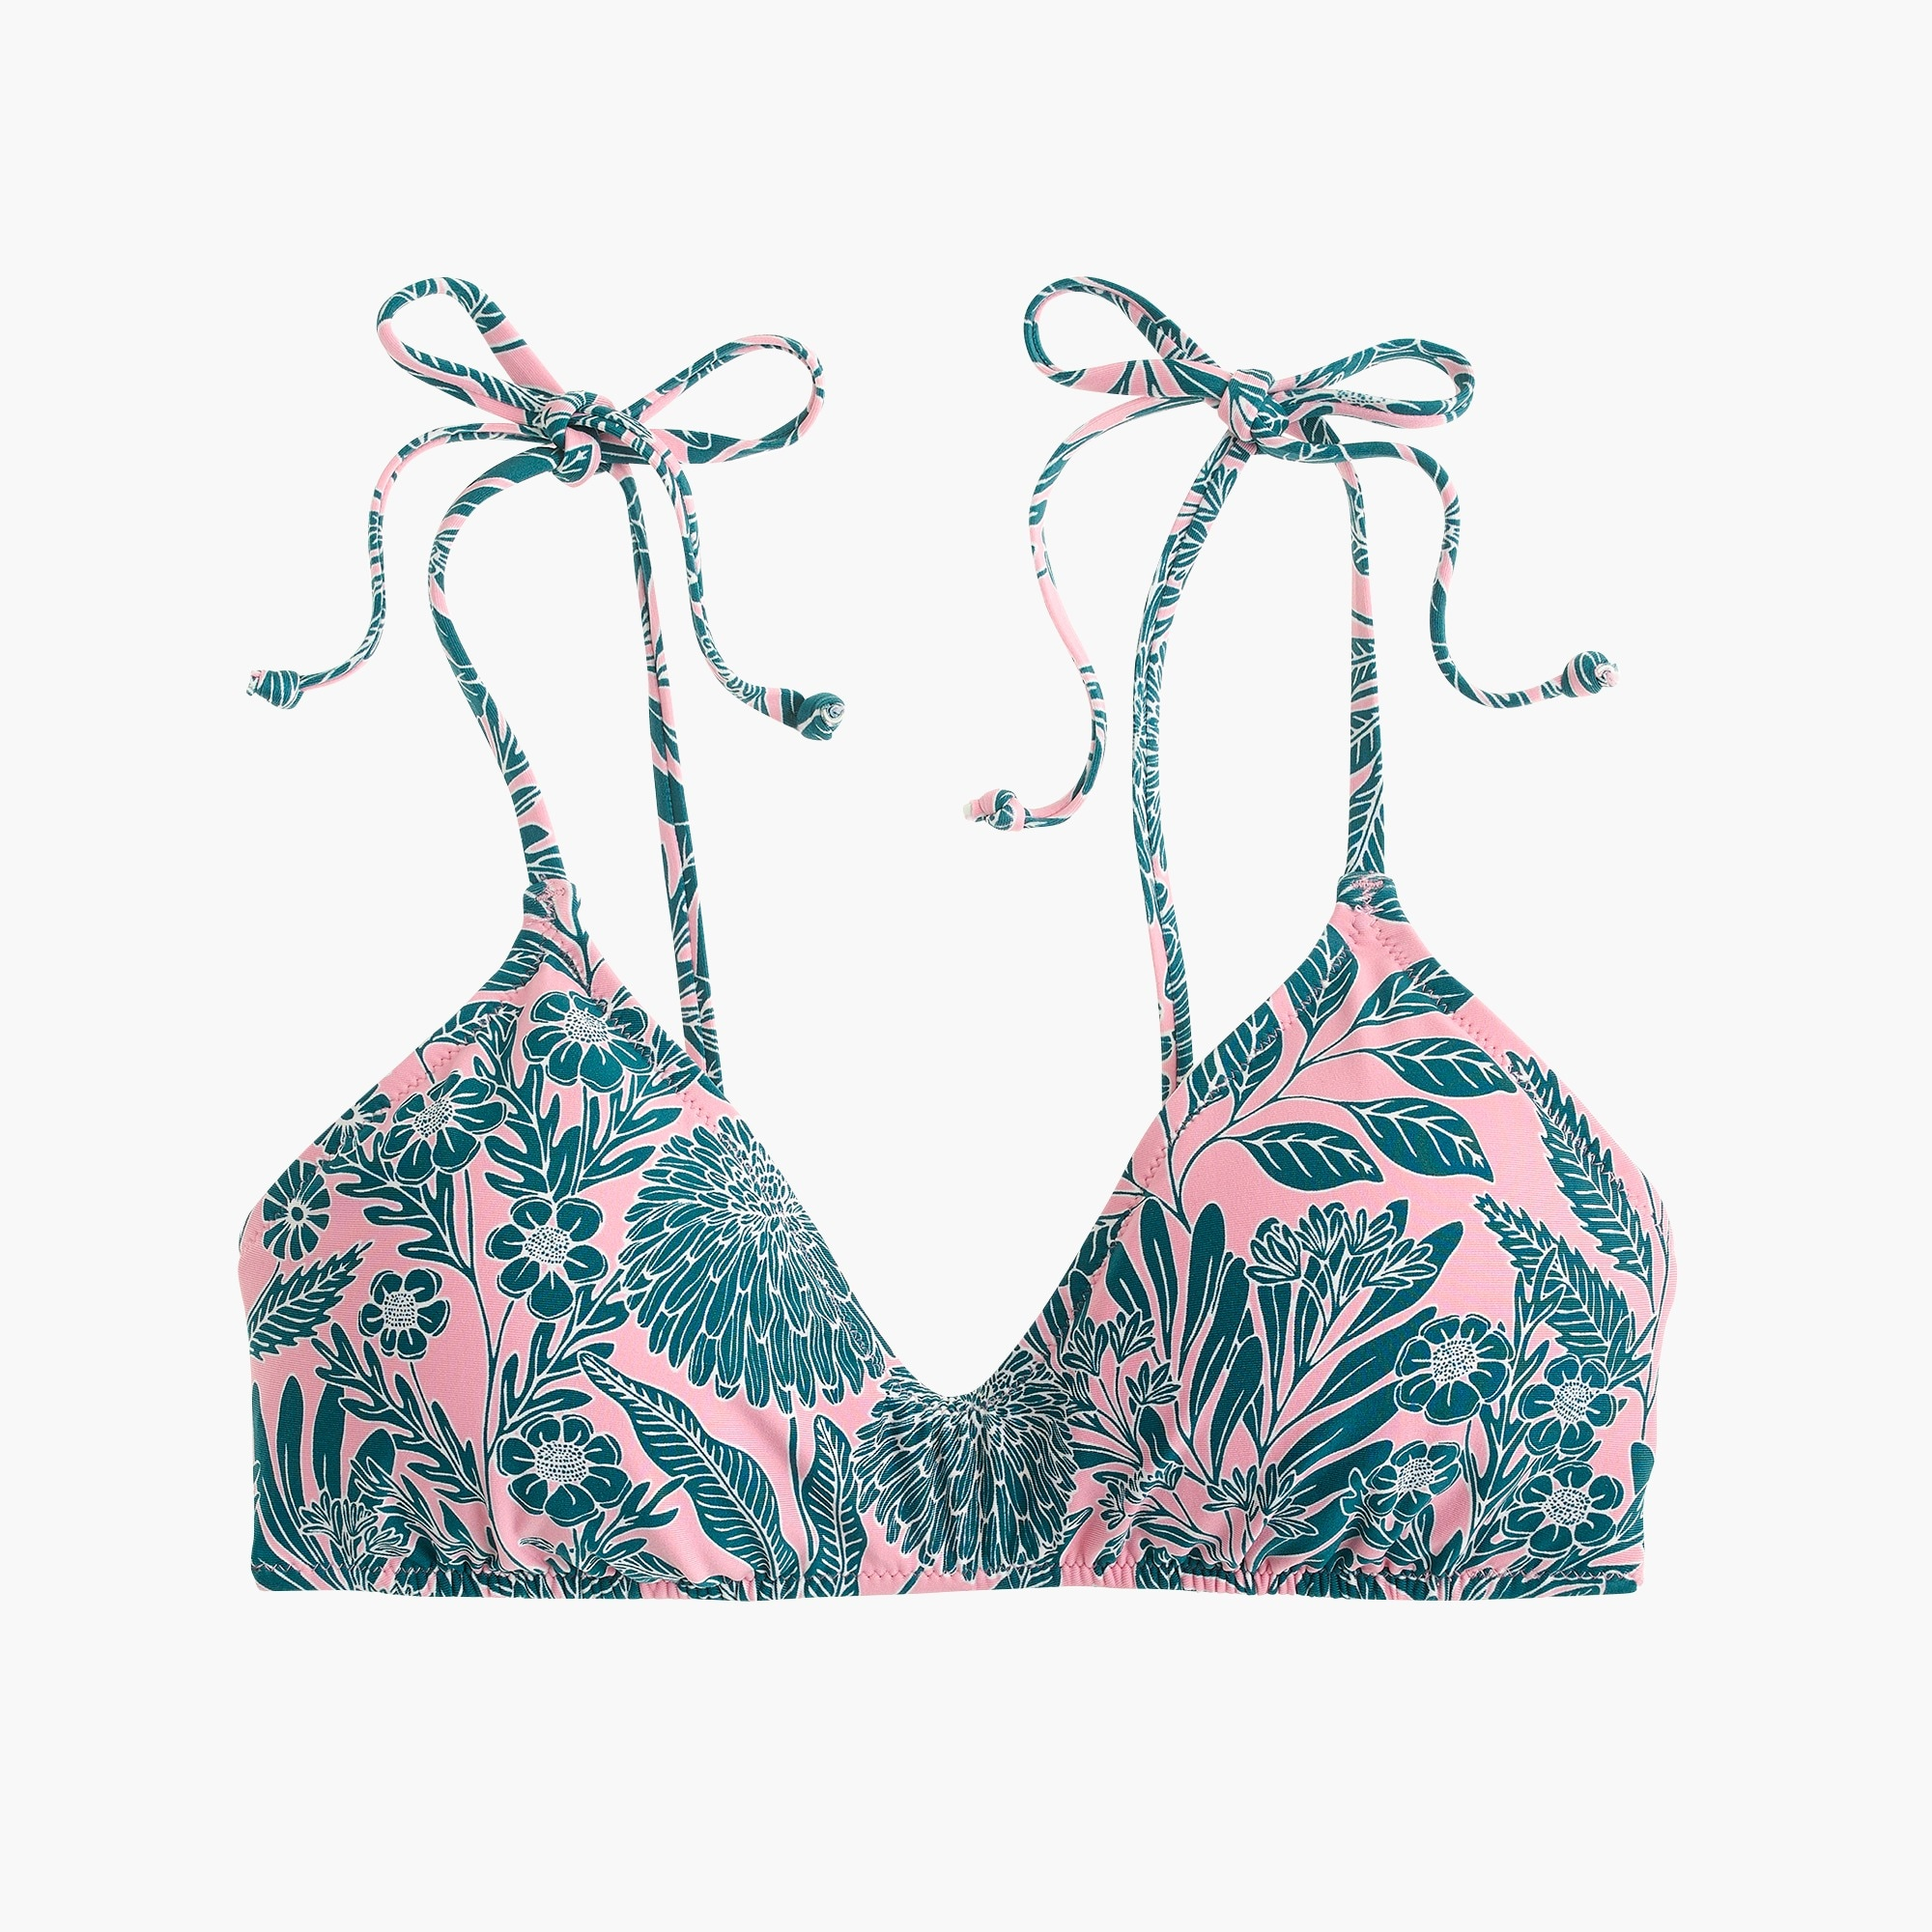 Image 3 for J.Crew X Abigail Borg tie-shoulder french bikini top in prairie dusk floral